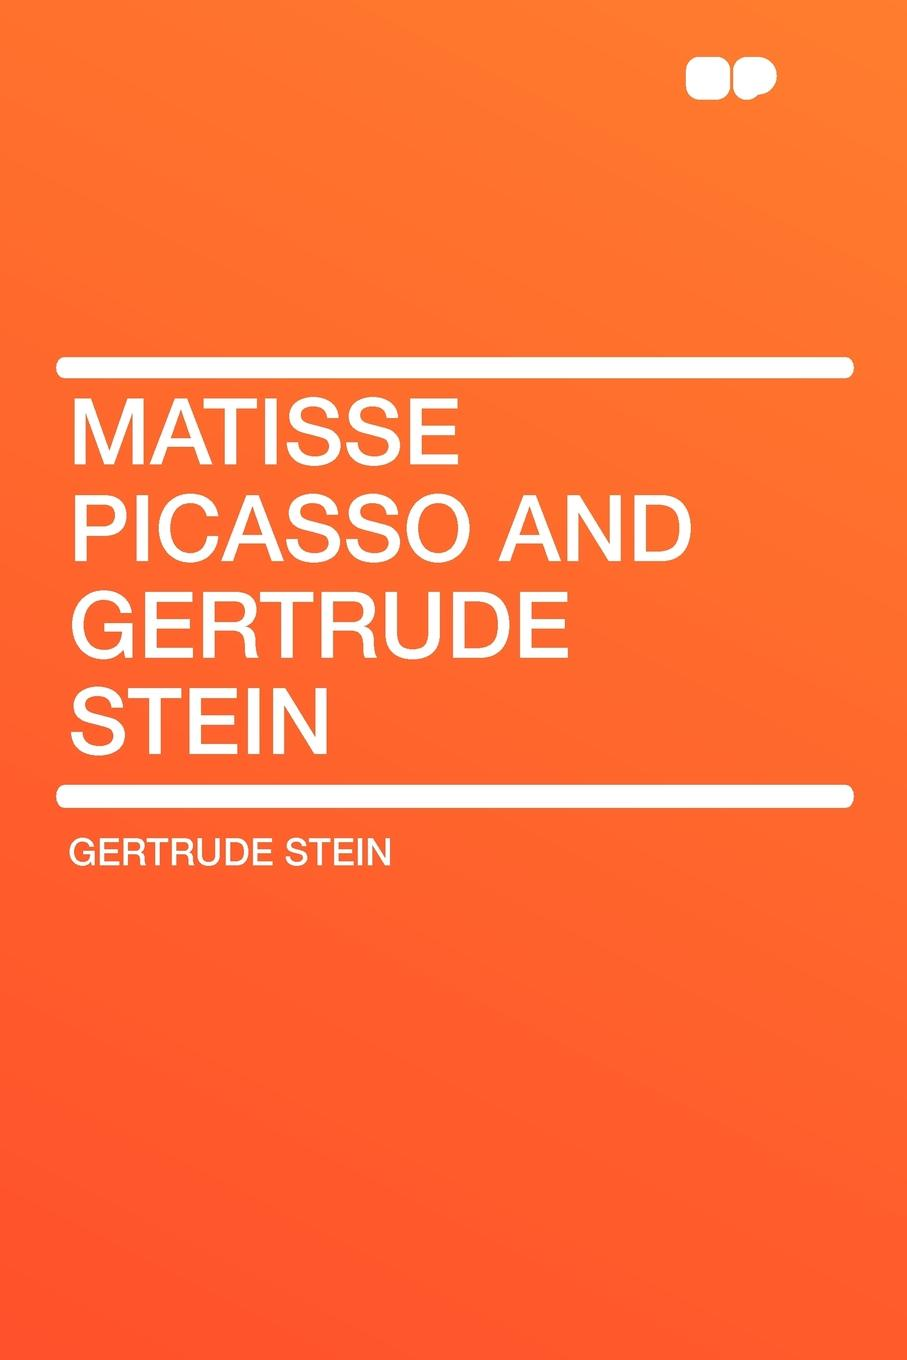 Gertrude Stein Matisse Picasso and Gertrude Stein gertrude page winding paths